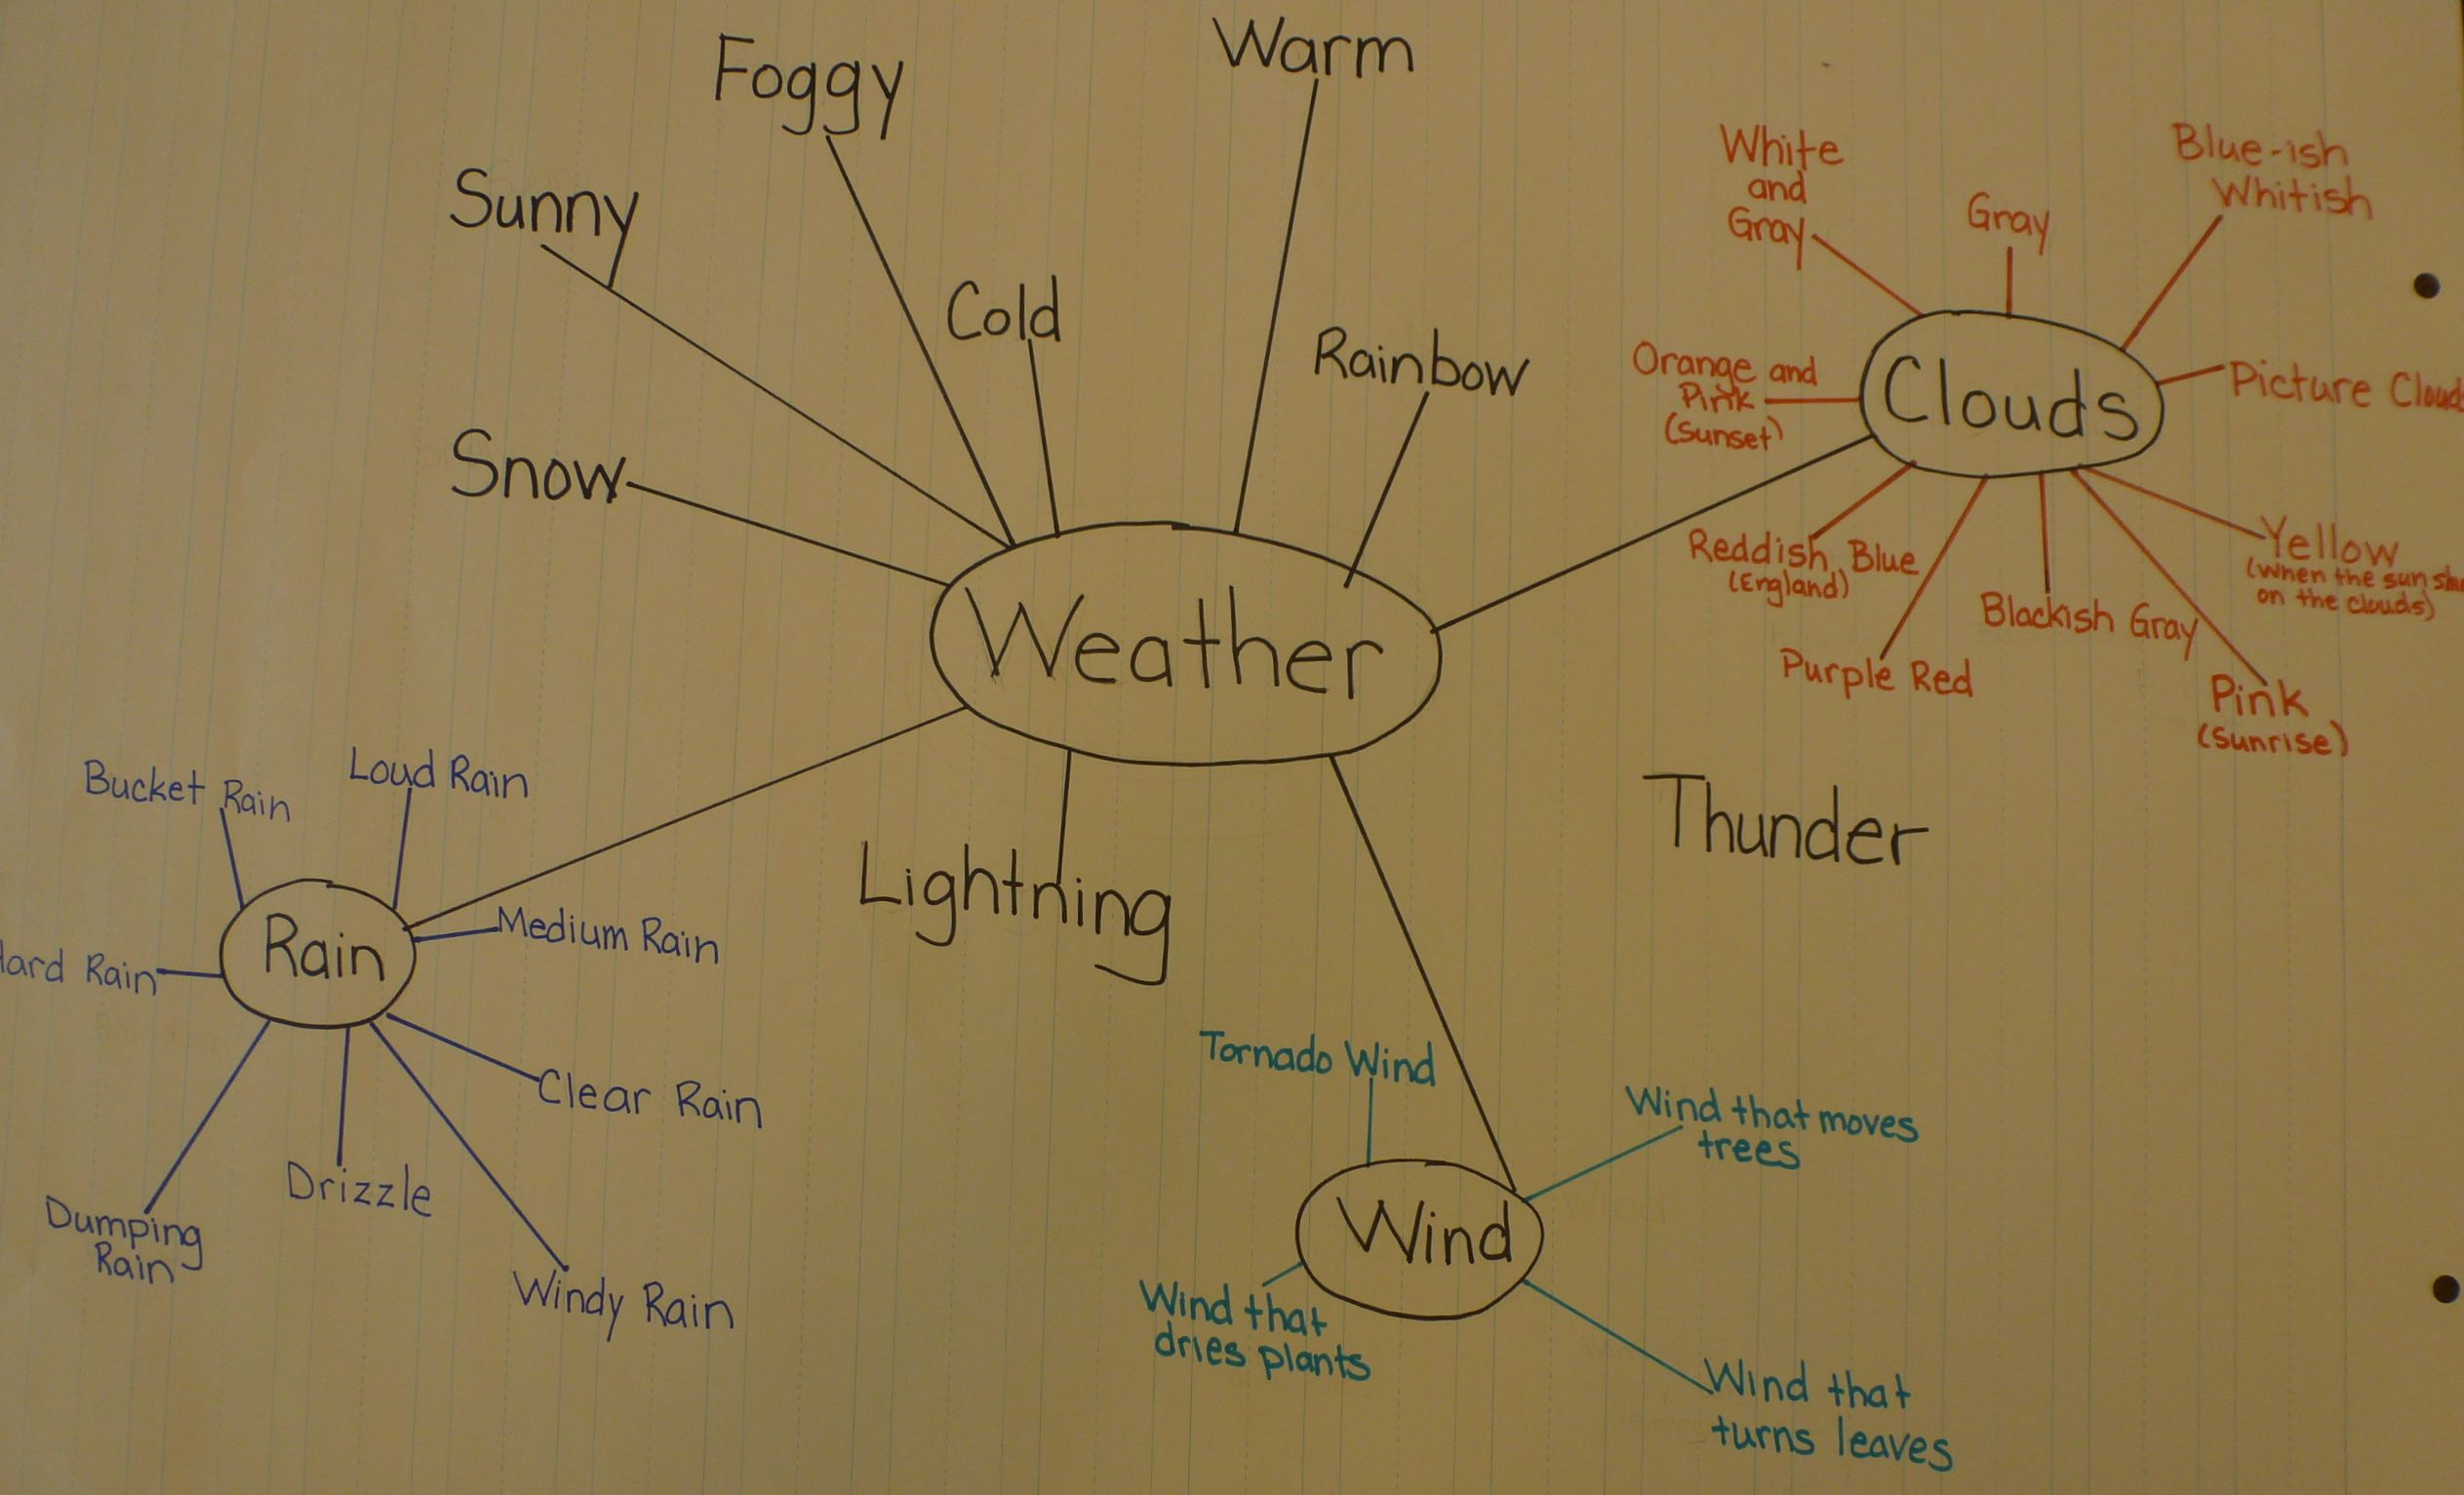 weather descriptions essays Unlike most editing & proofreading services, we edit for everything: grammar, spelling, punctuation, idea flow, sentence structure, & more get started now.